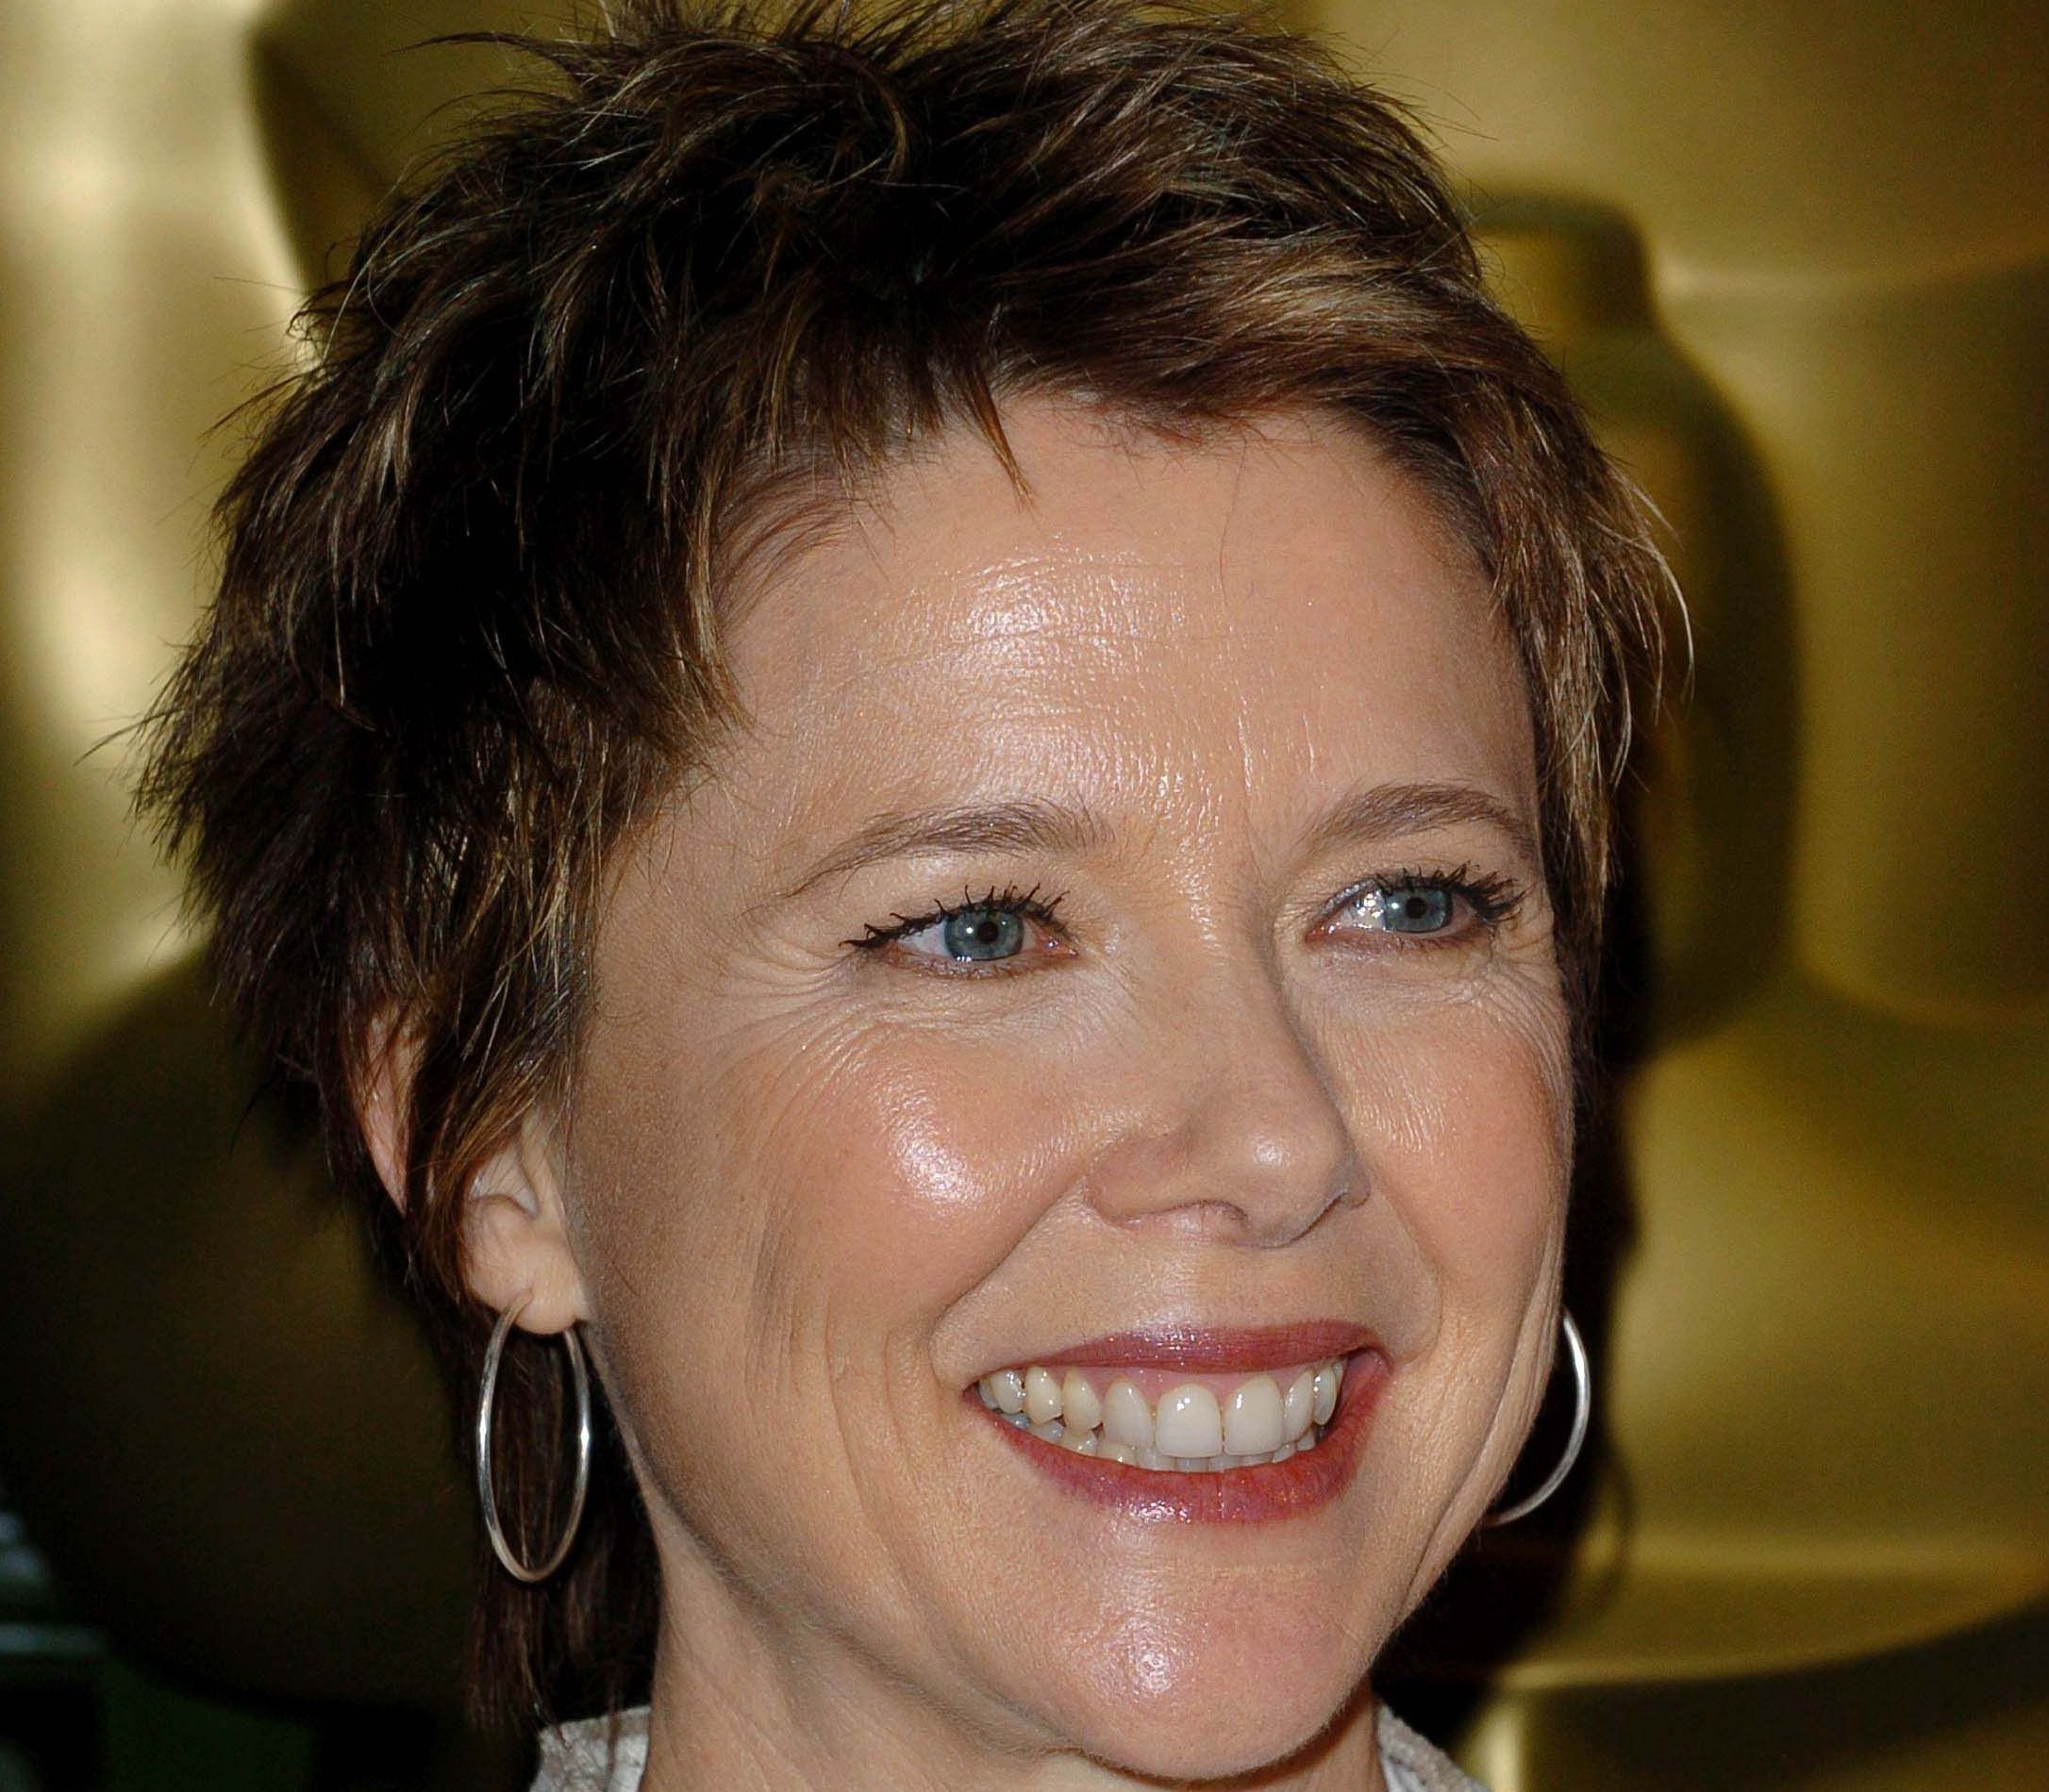 annette bening wallpaper - photo #19